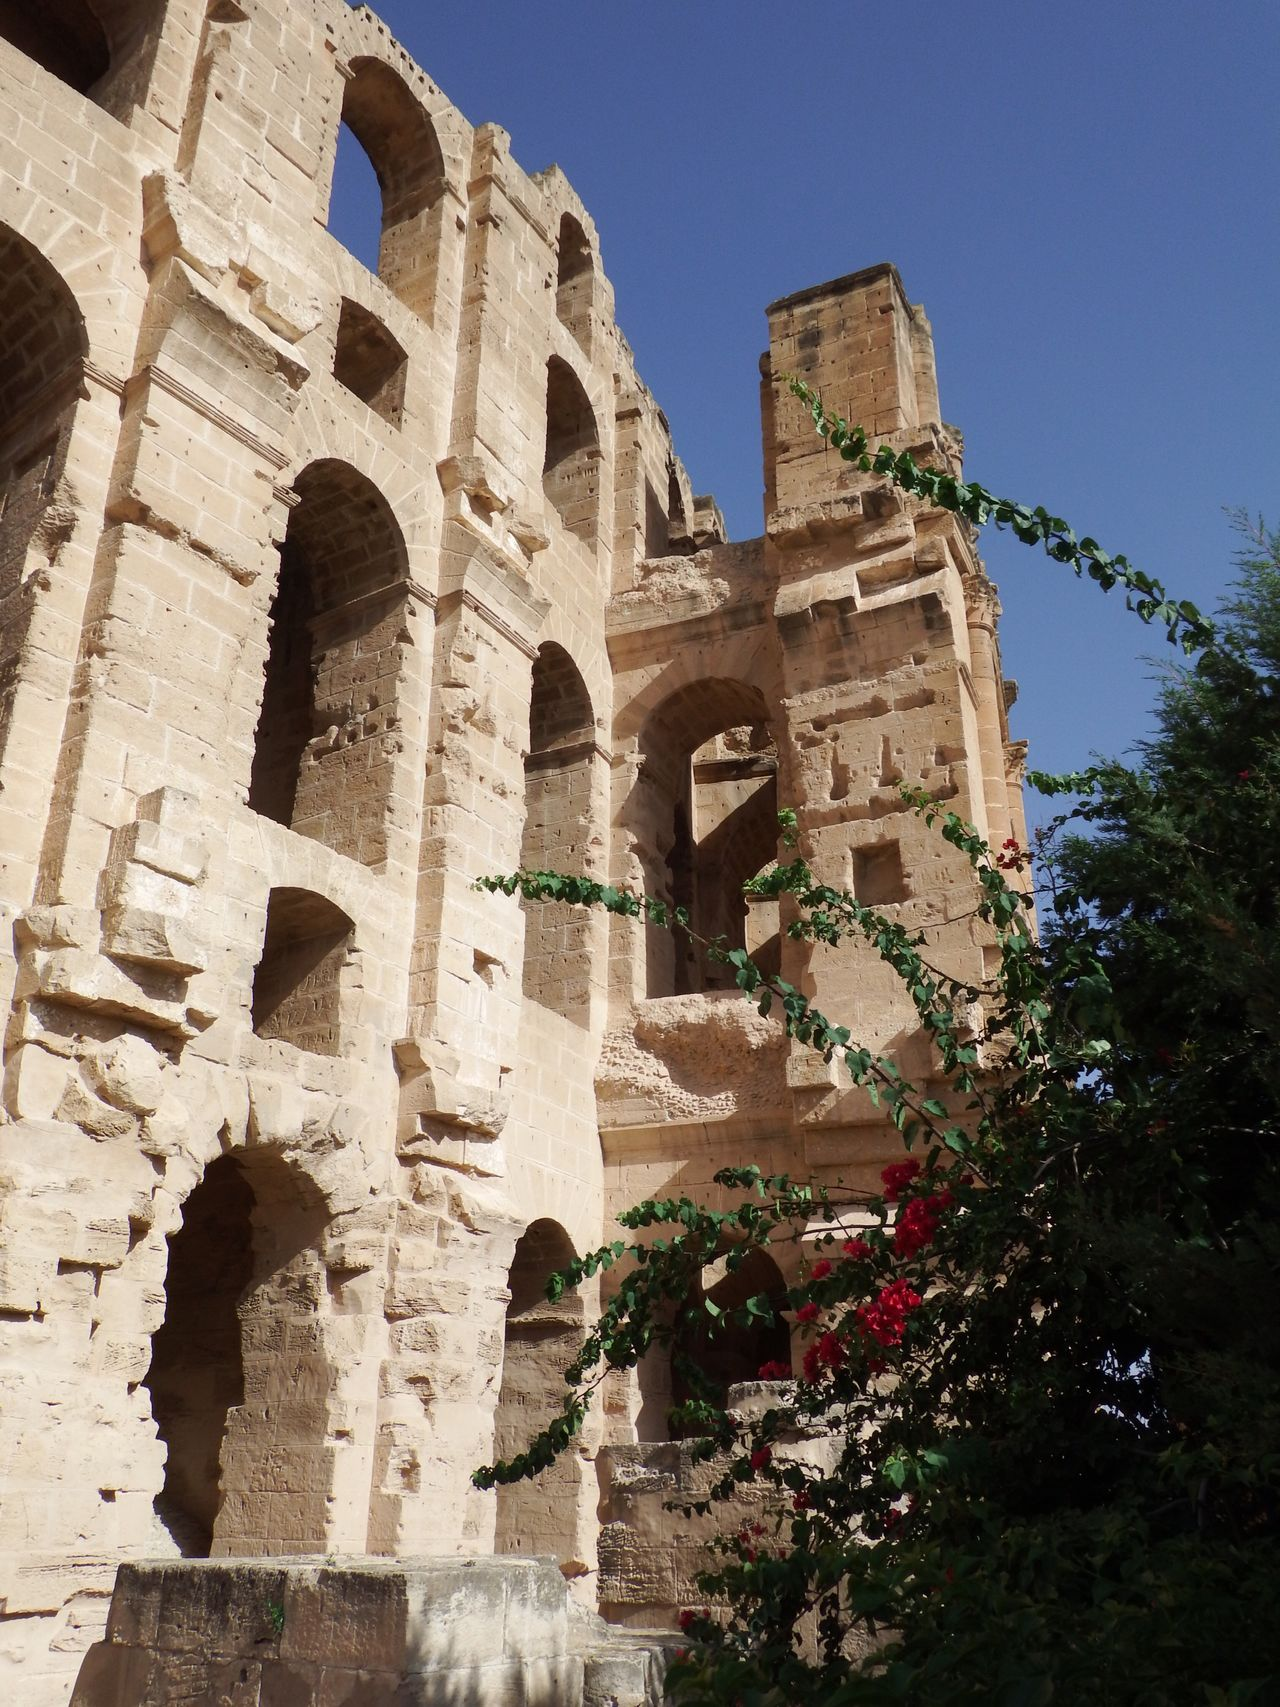 Ruin Amphitheatre Warm Colors Day Blue Sky Sunshine Summer El Djem No People Traveling Ancient Ancient Architecture Ancient Ruins Historic Historical Building Tunesia